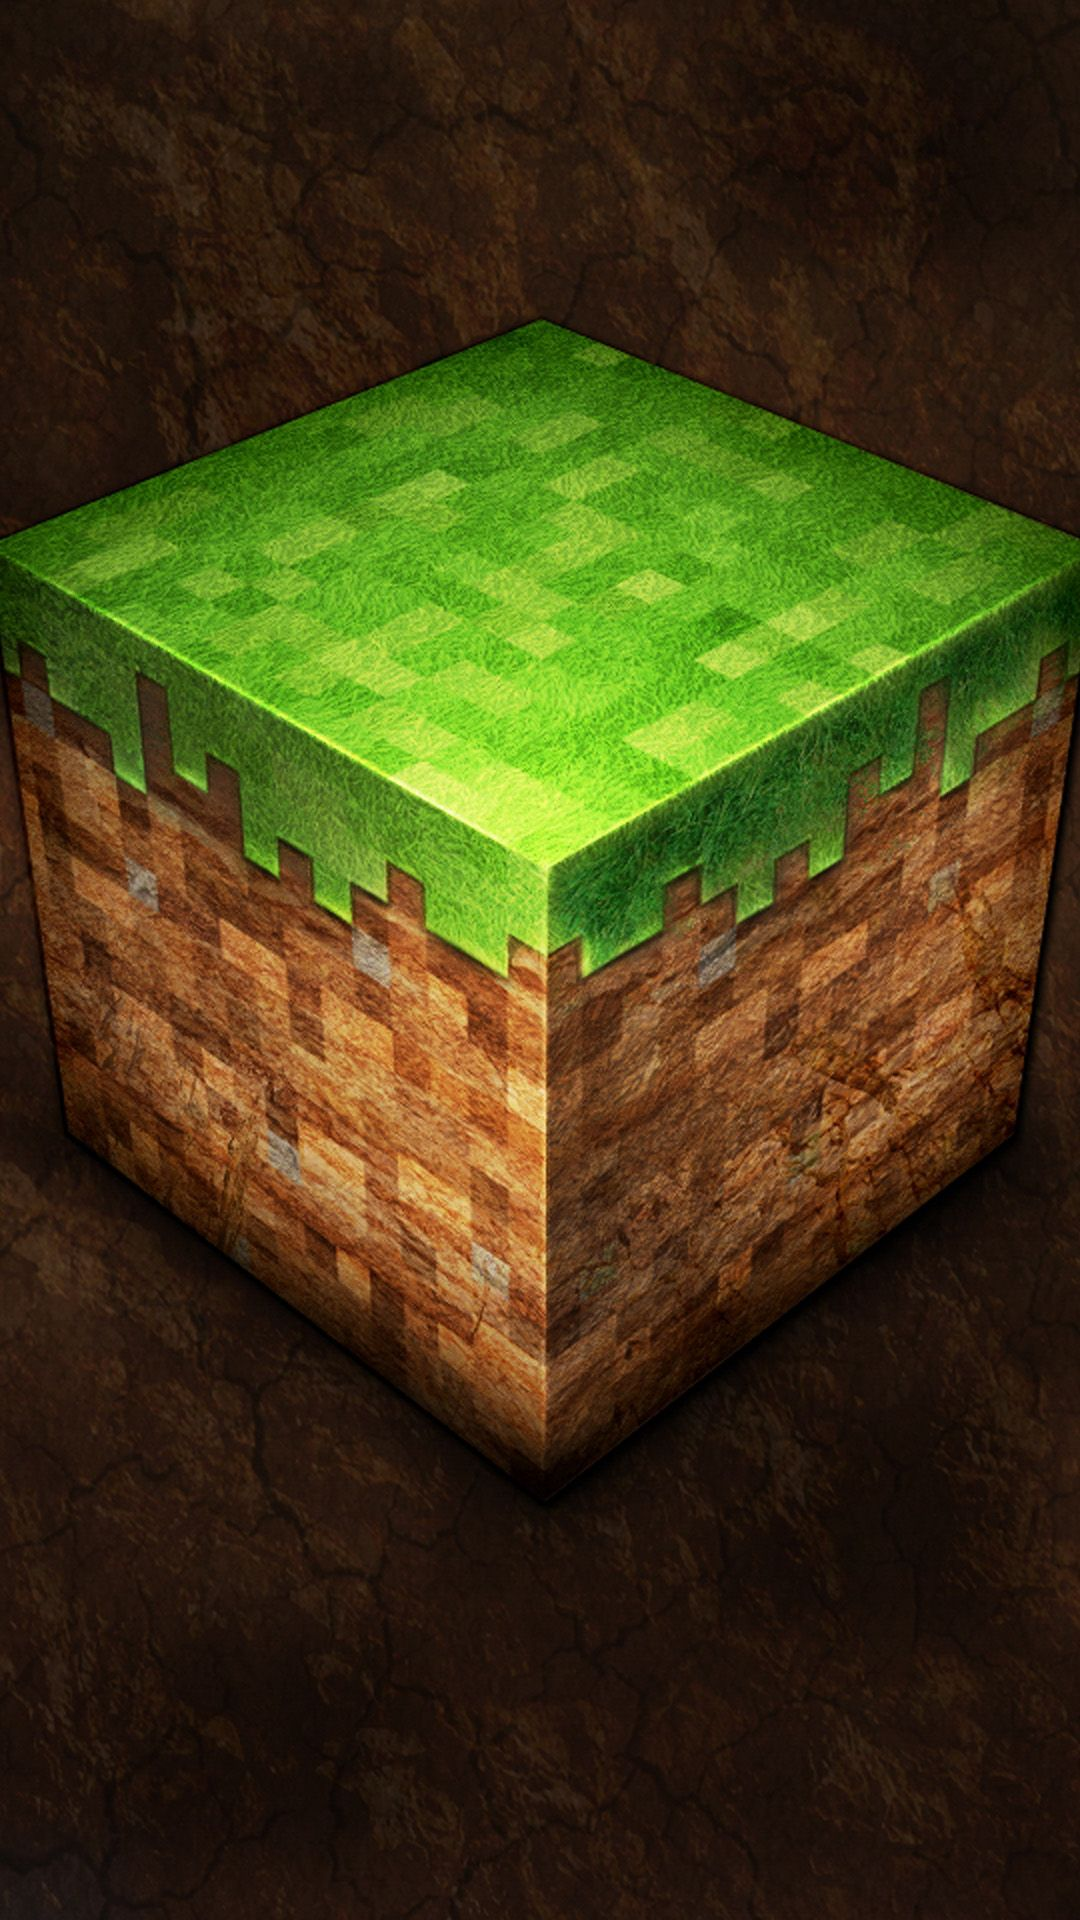 Pin oleh youbia di Minecraft6 Wallpaper iphone